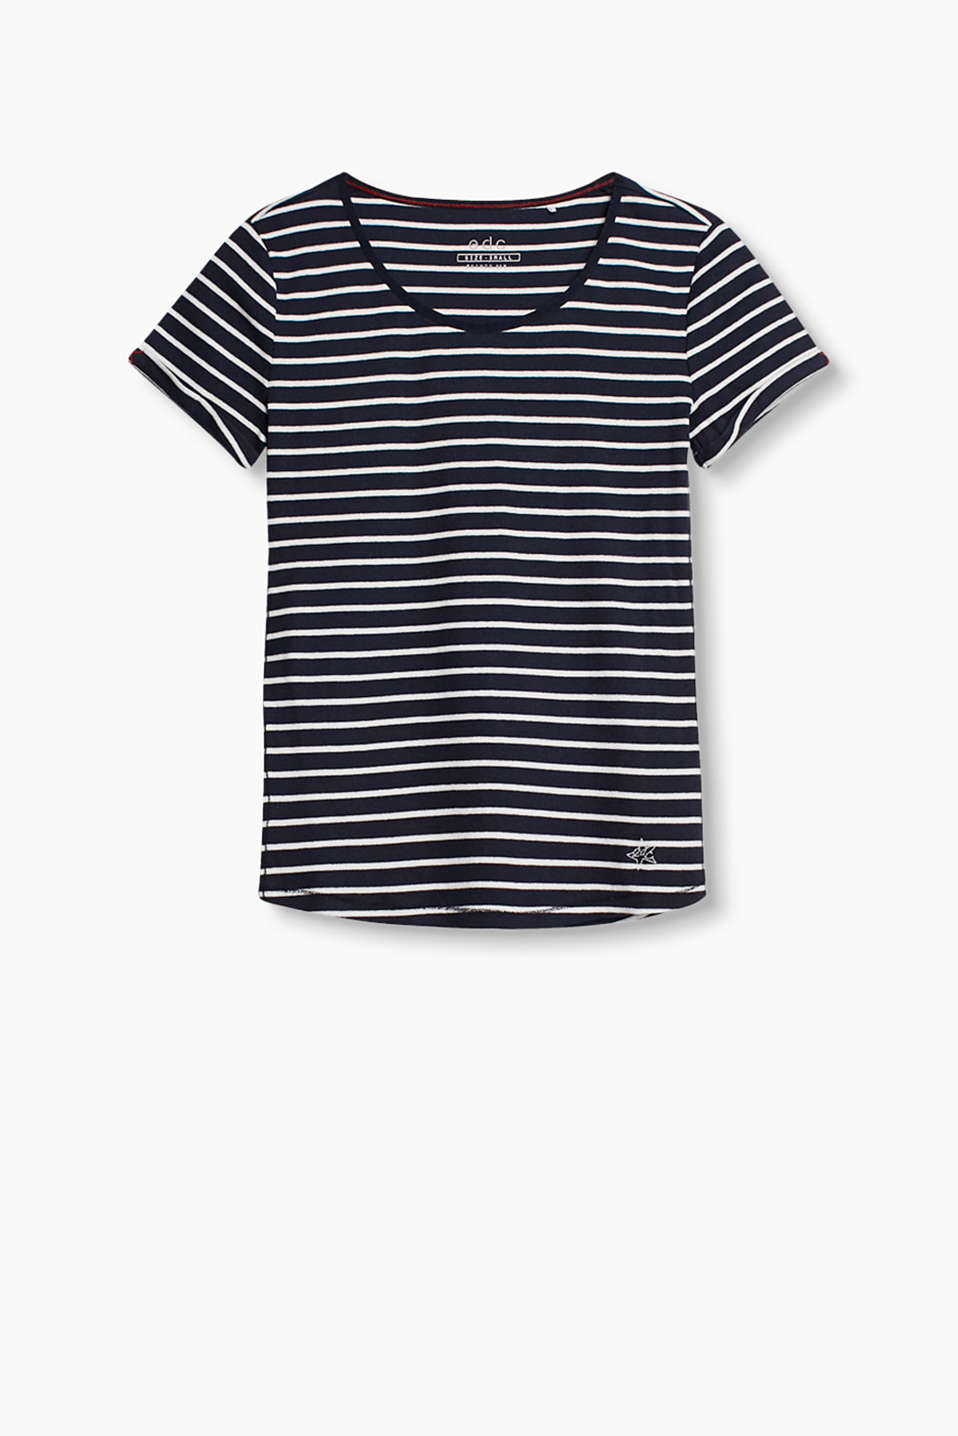 with an all-over striped pattern and fixed turn-up sleeves